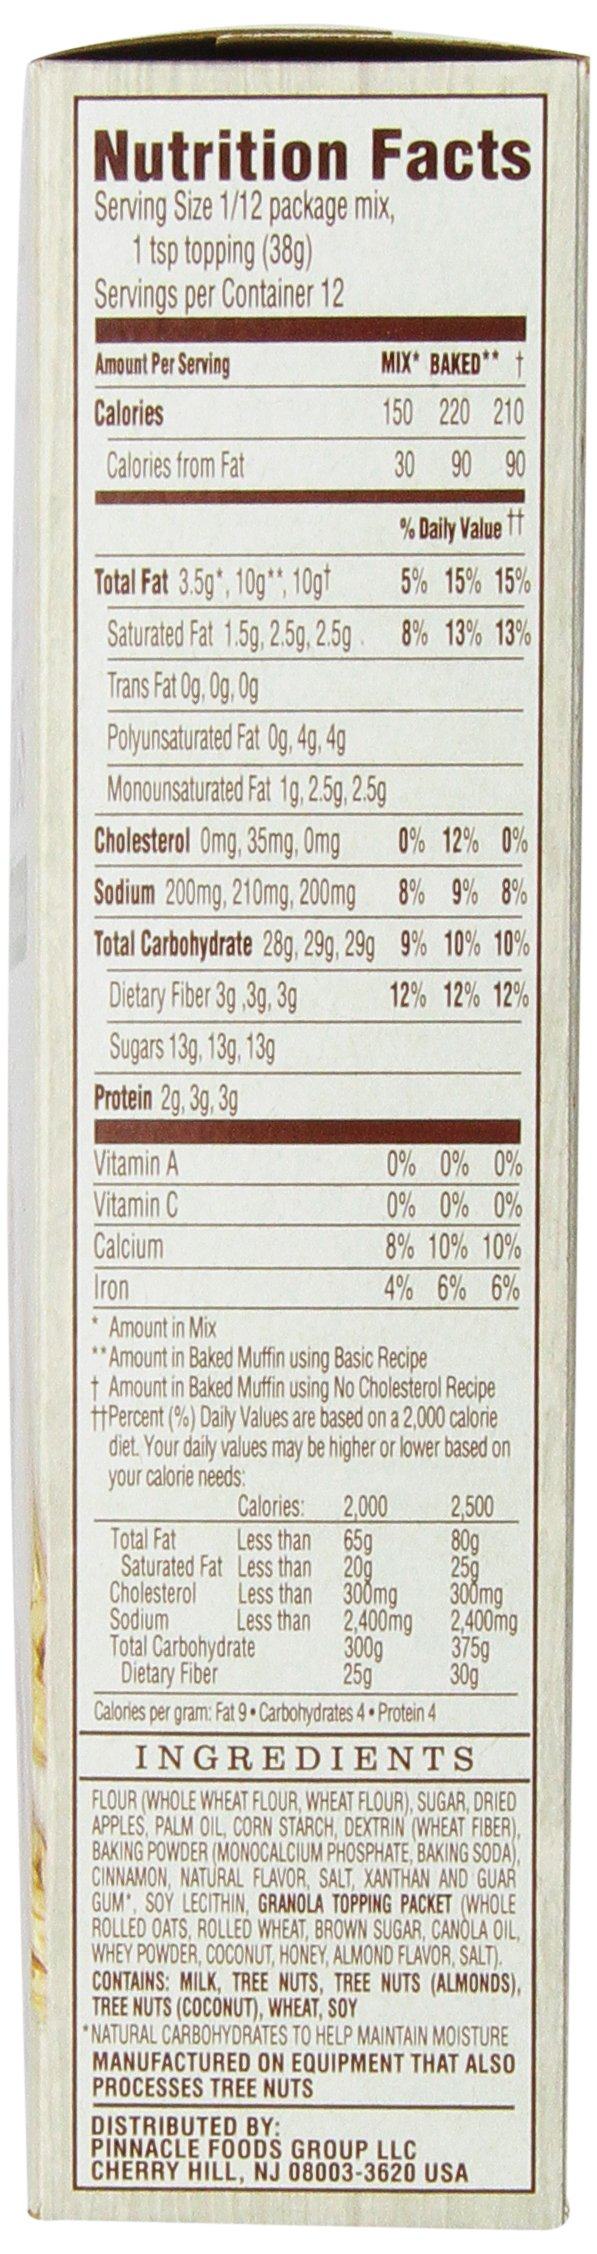 Duncan Hines Simple Mornings Oatmeal Muffin Mix, Apple Cinnamon, 16.1-Ounce (Pack of 12) by Duncan Hines (Image #4)